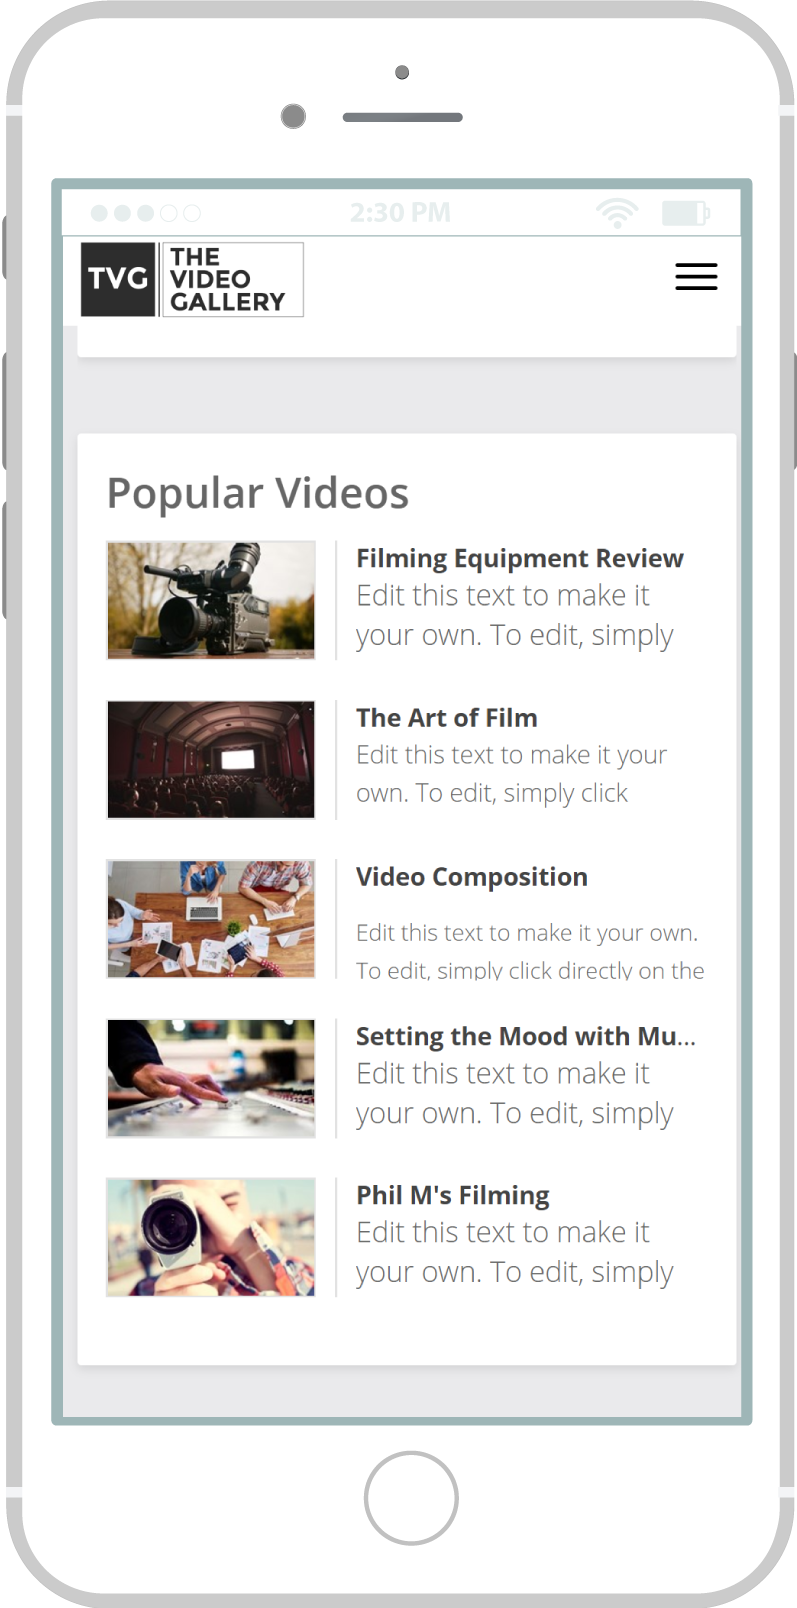 All-In-One Online Video Sales Website - The Video Gallery Mobile View 2 Example